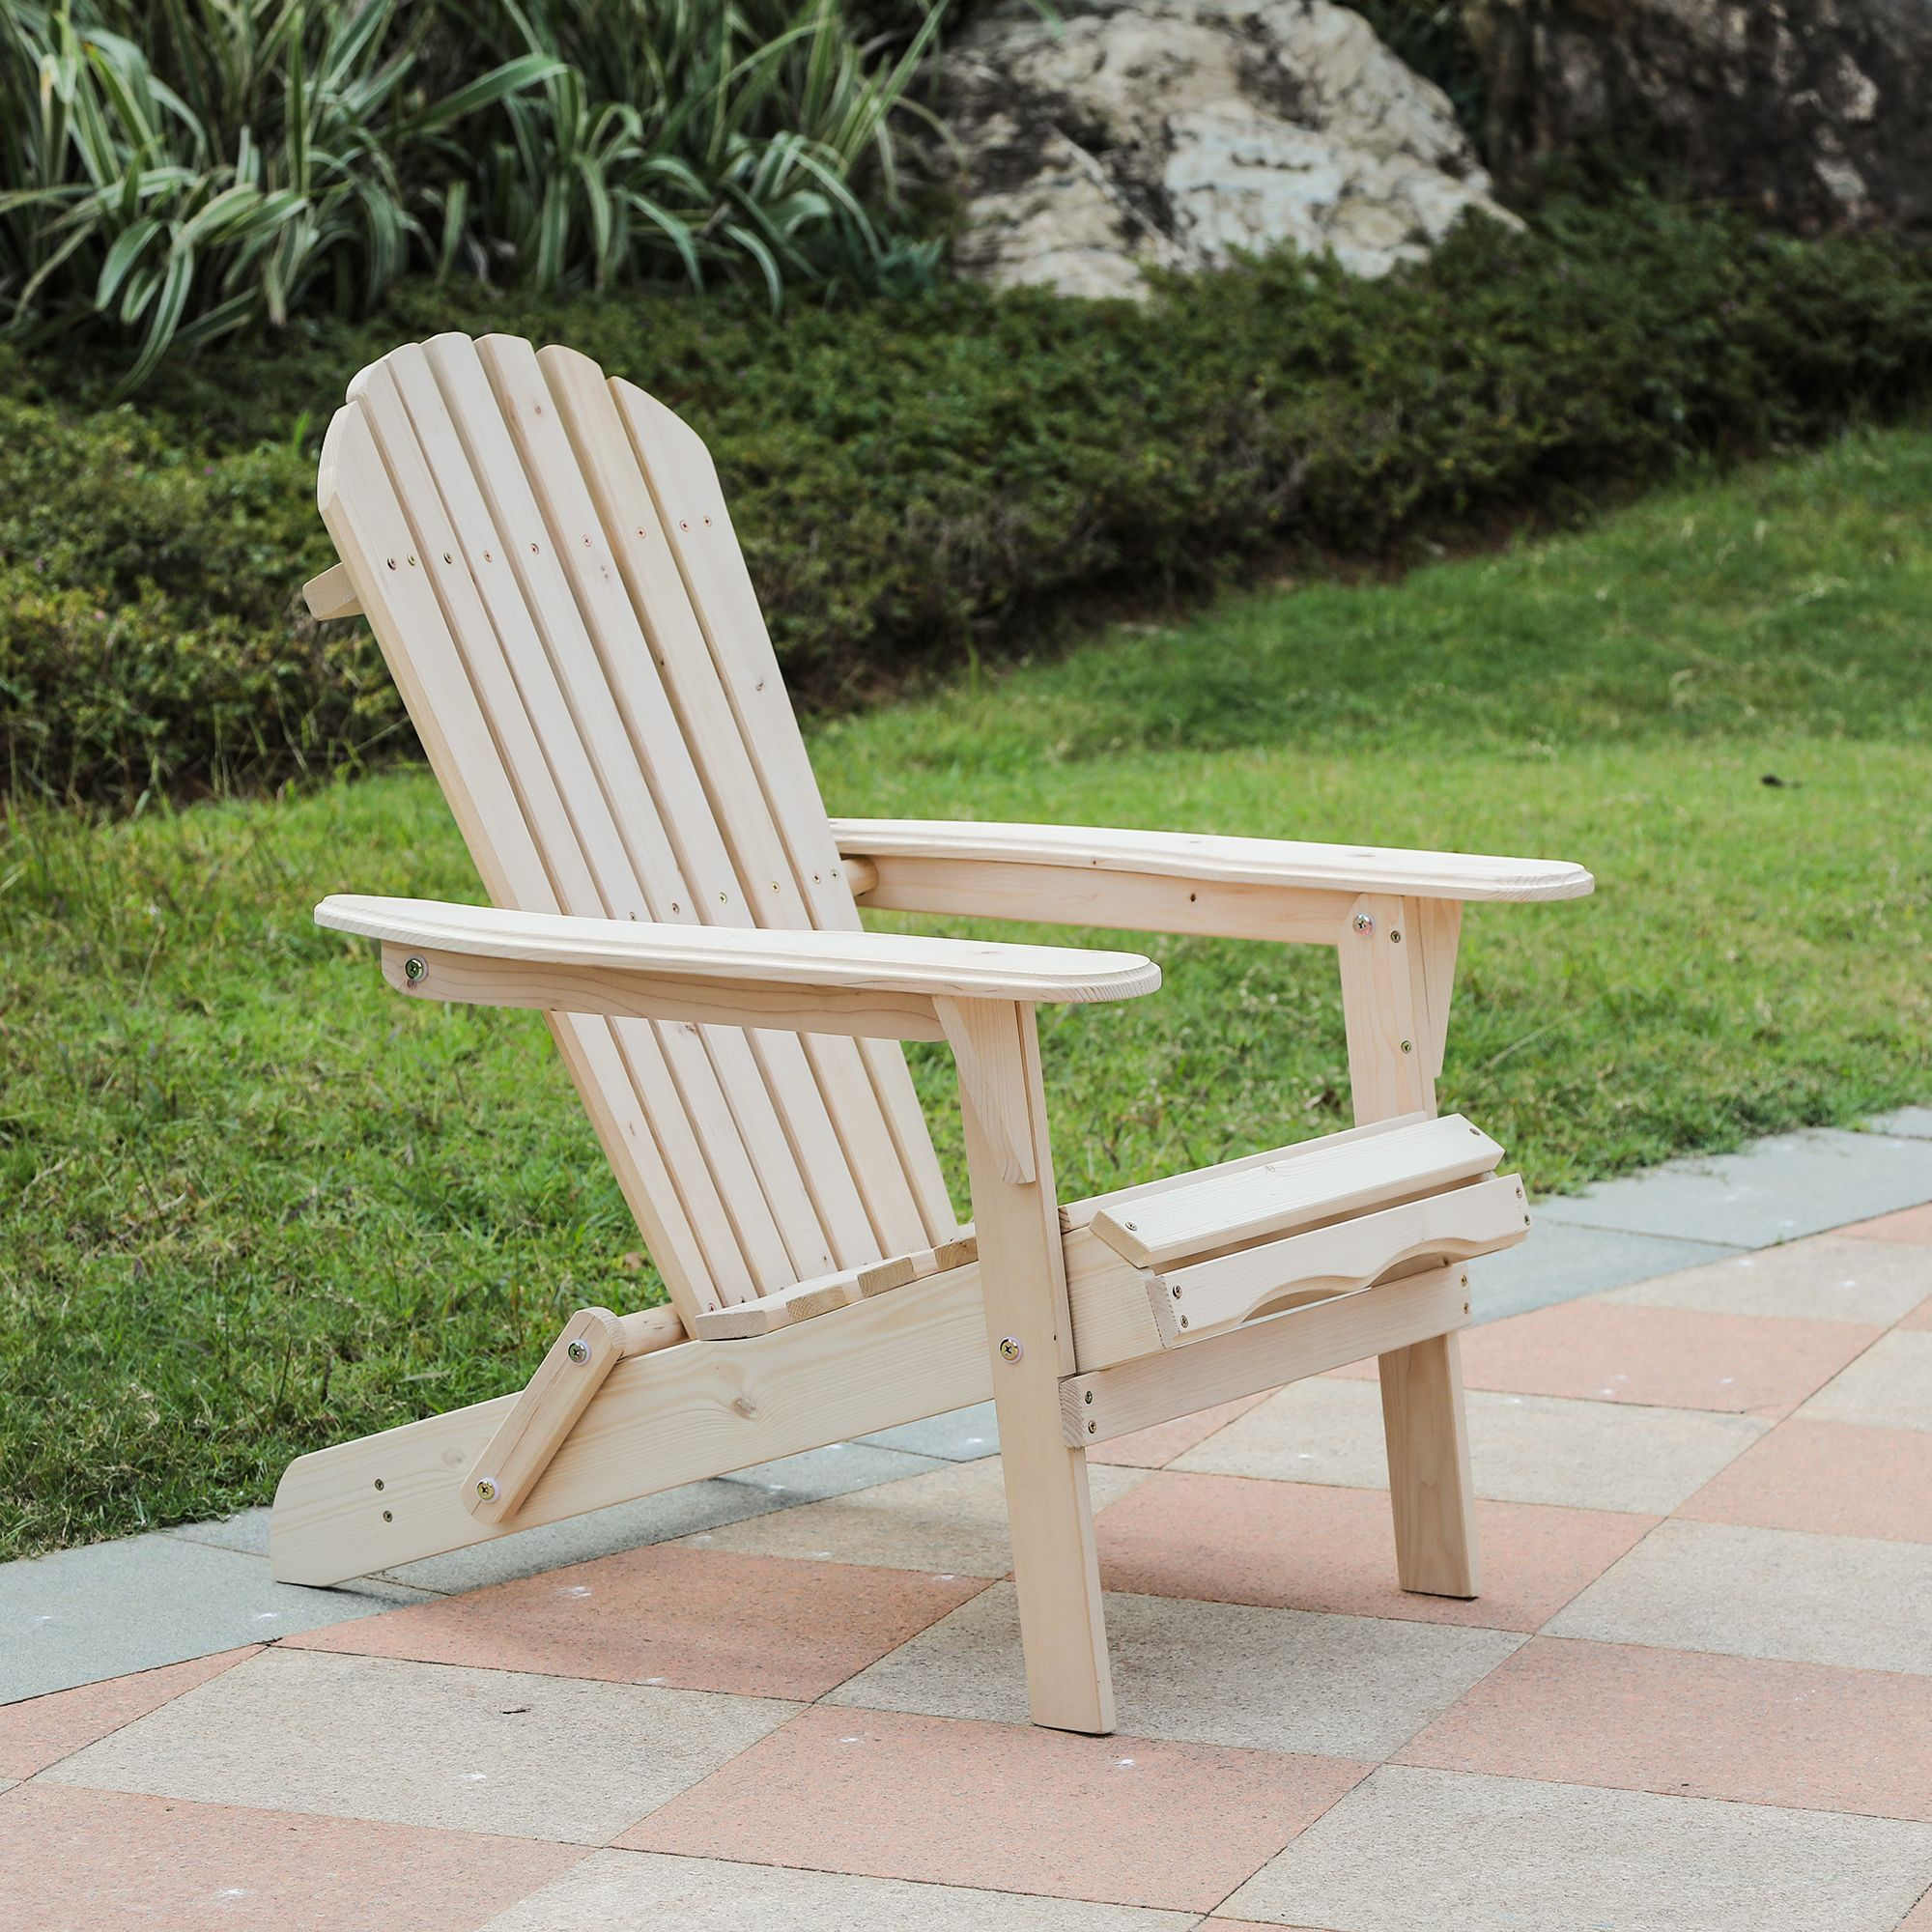 Foldable Adirondack Chair Kit Adirondack chair kits